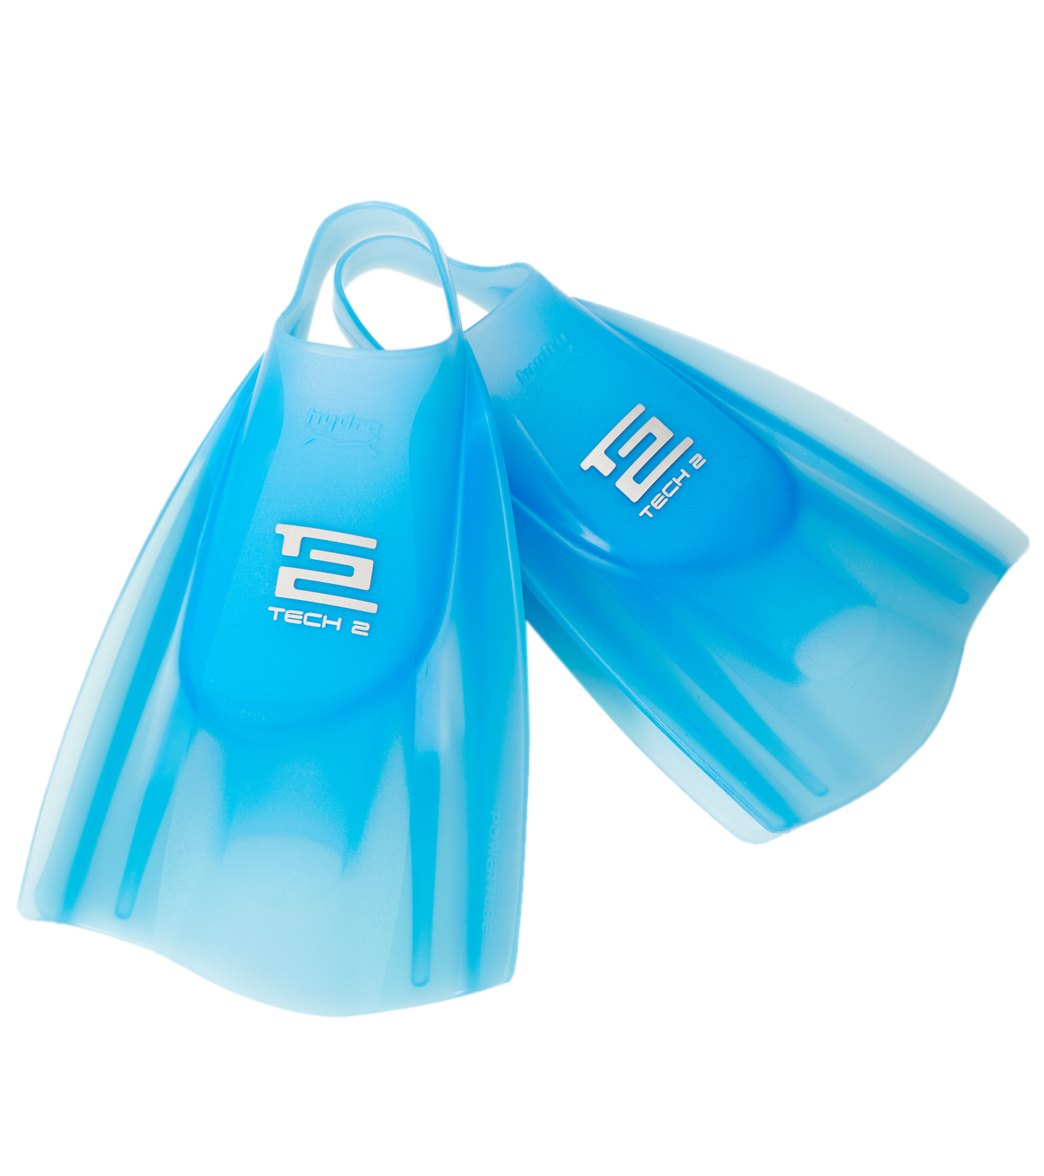 Hydro Tech 2 Open Water Swimming Fins